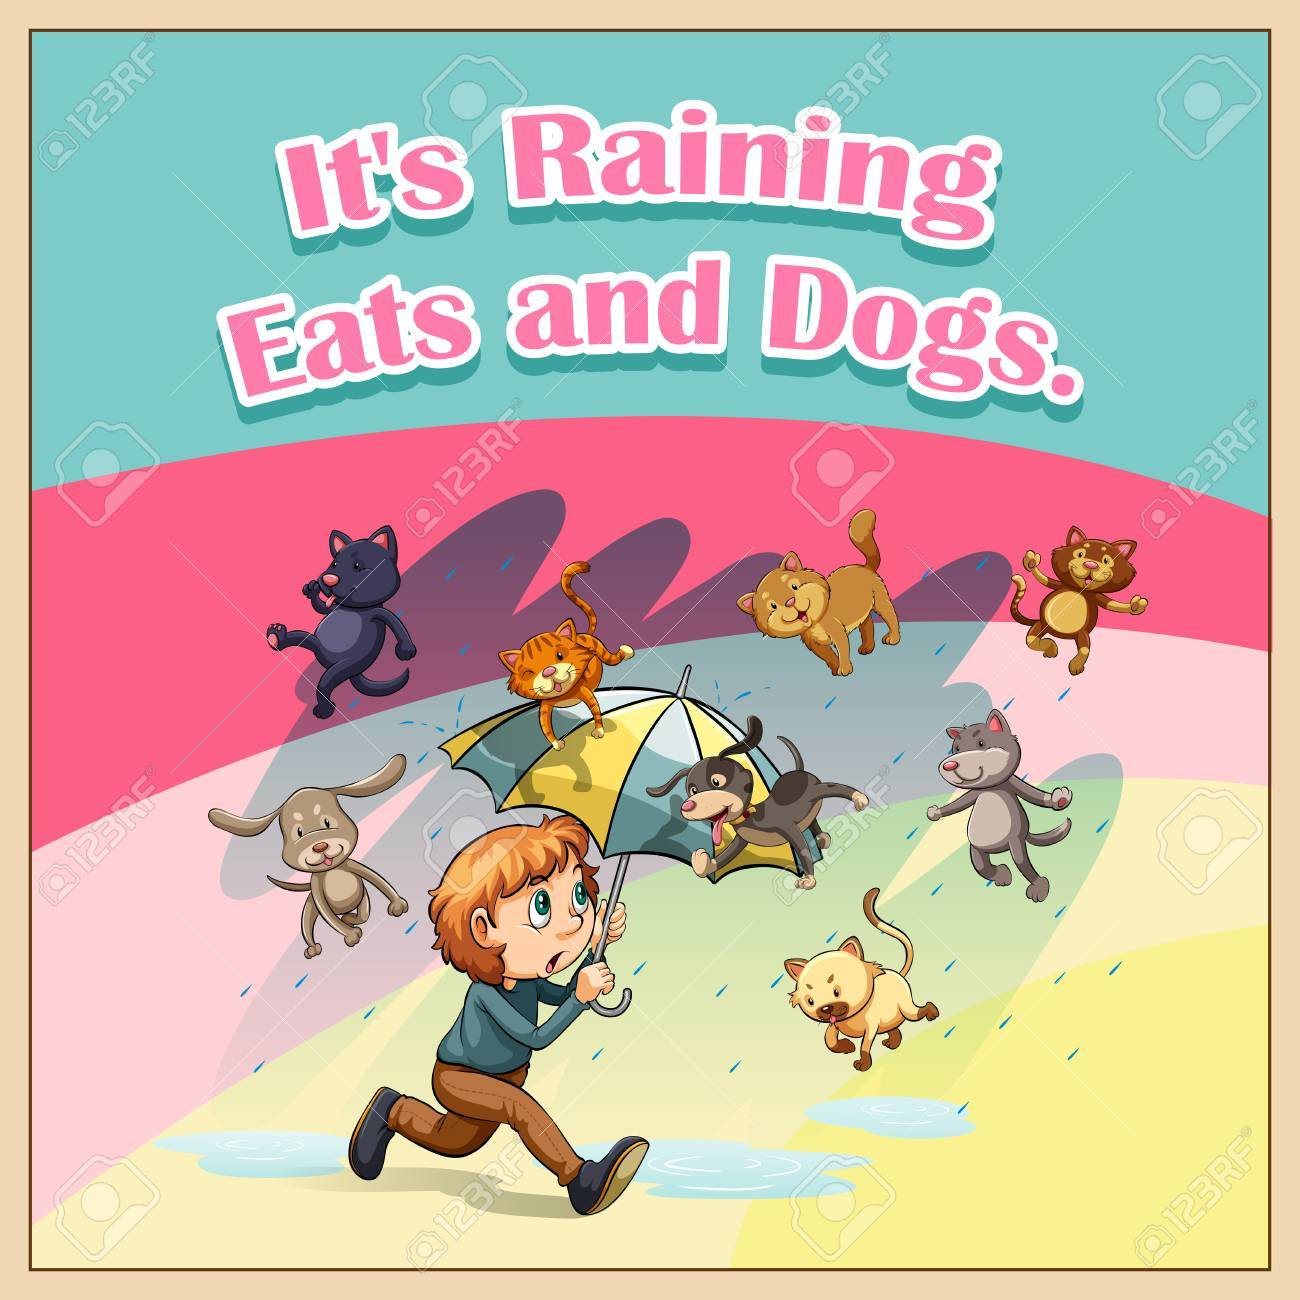 Idiom Saying It S Raining Cats And Dogs Royalty Free Cliparts Vectors And Stock Illustration Image 42520266